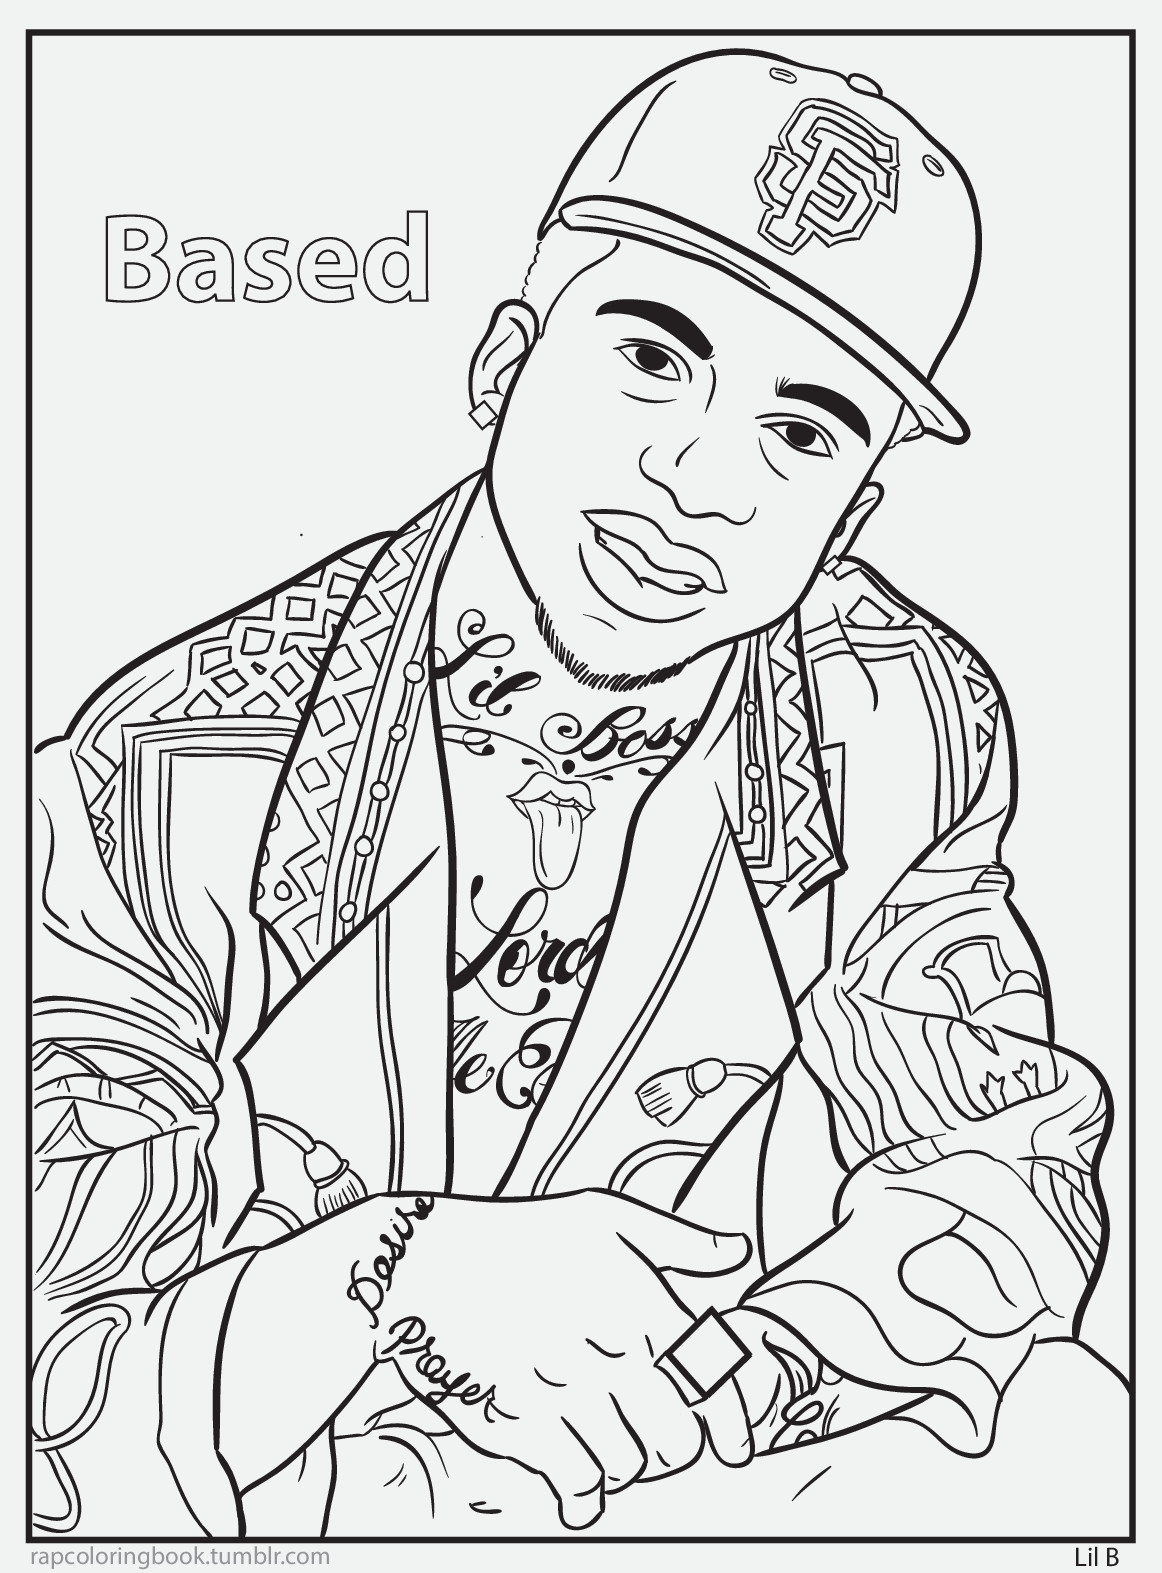 27 Tumblr Coloring Pages Pictures   FREE COLORING PAGES - Part 2